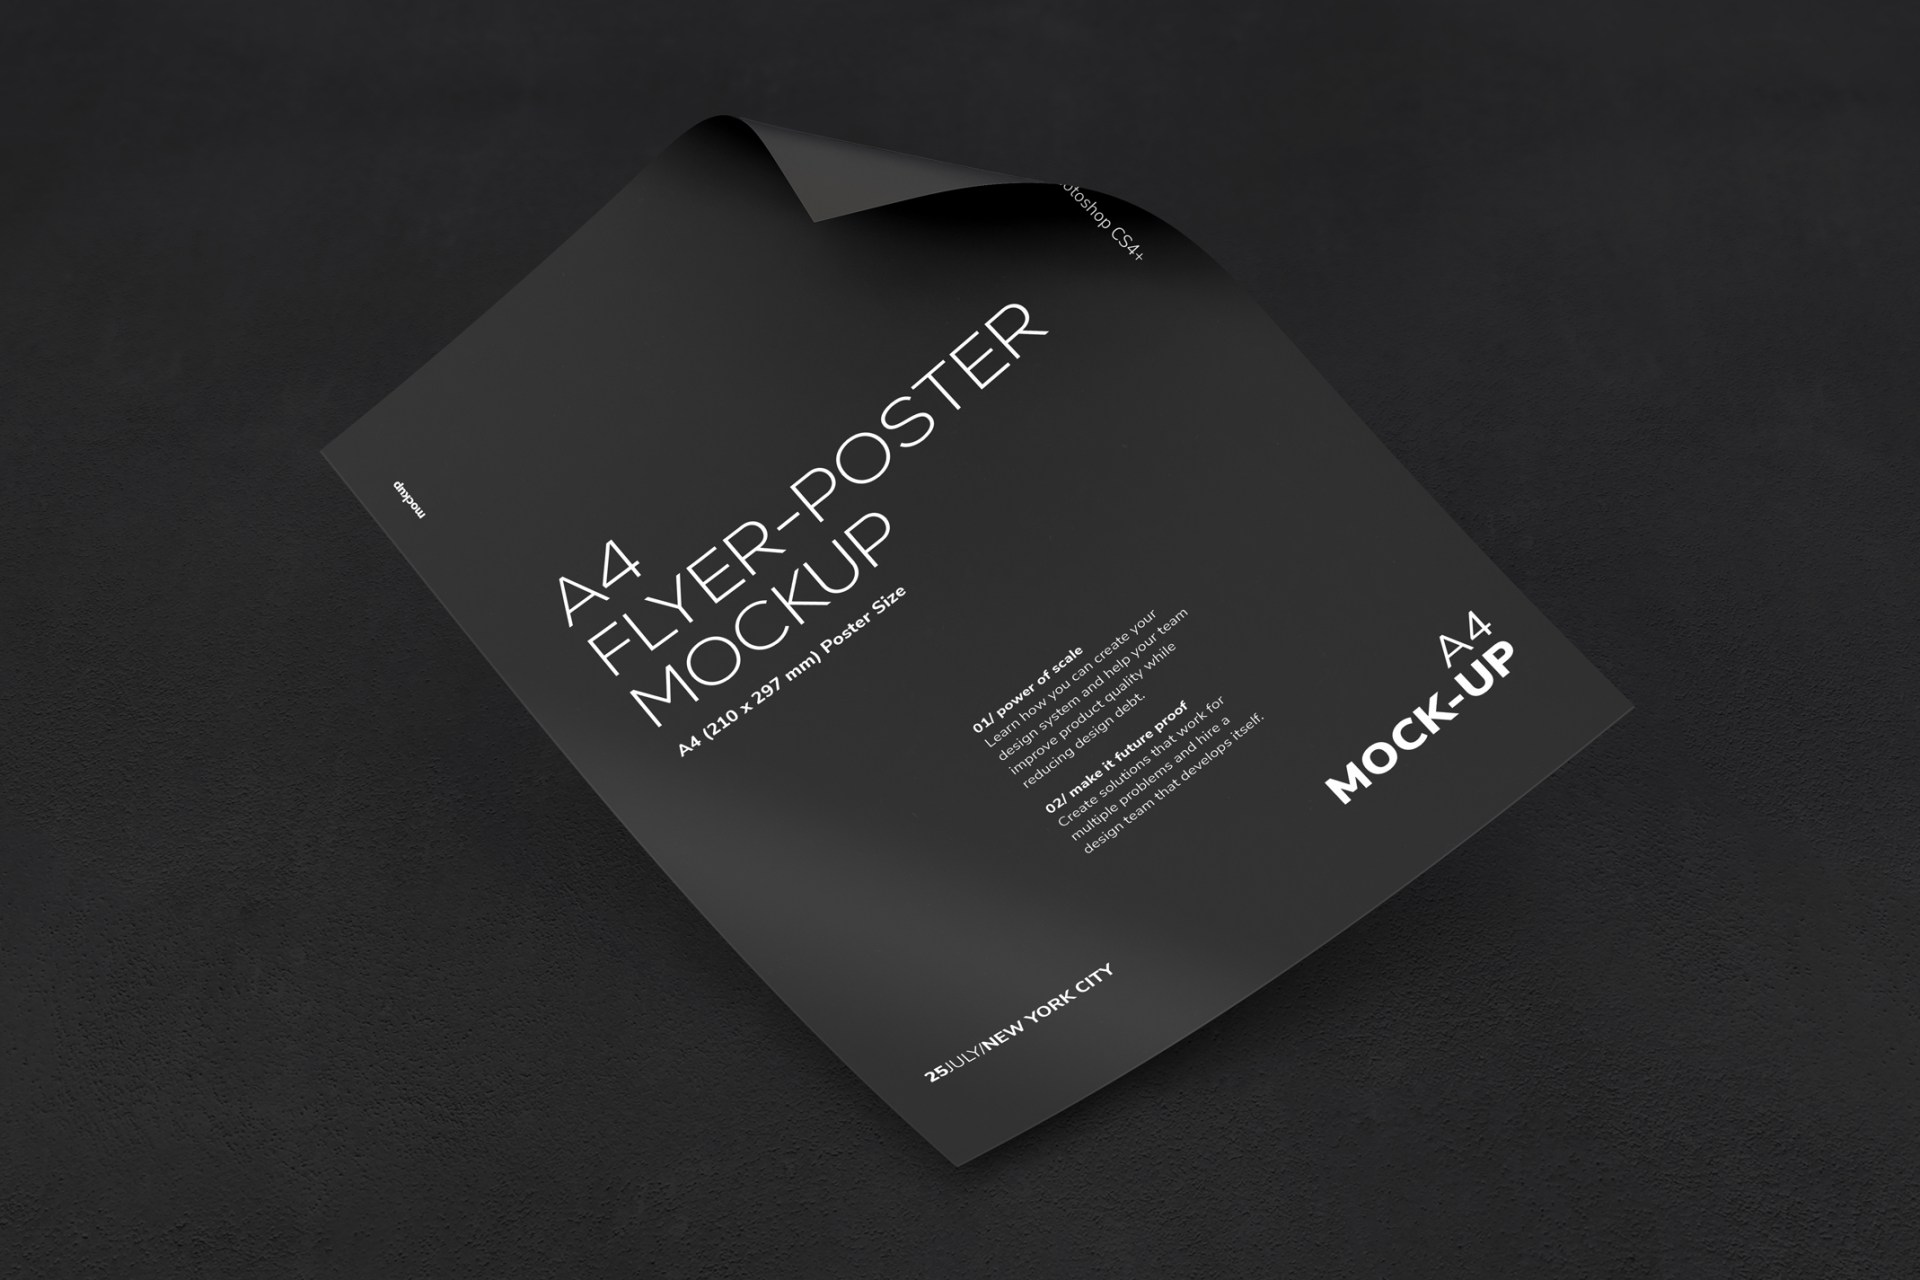 Curled A4 Flyer-Poster Mockup 01